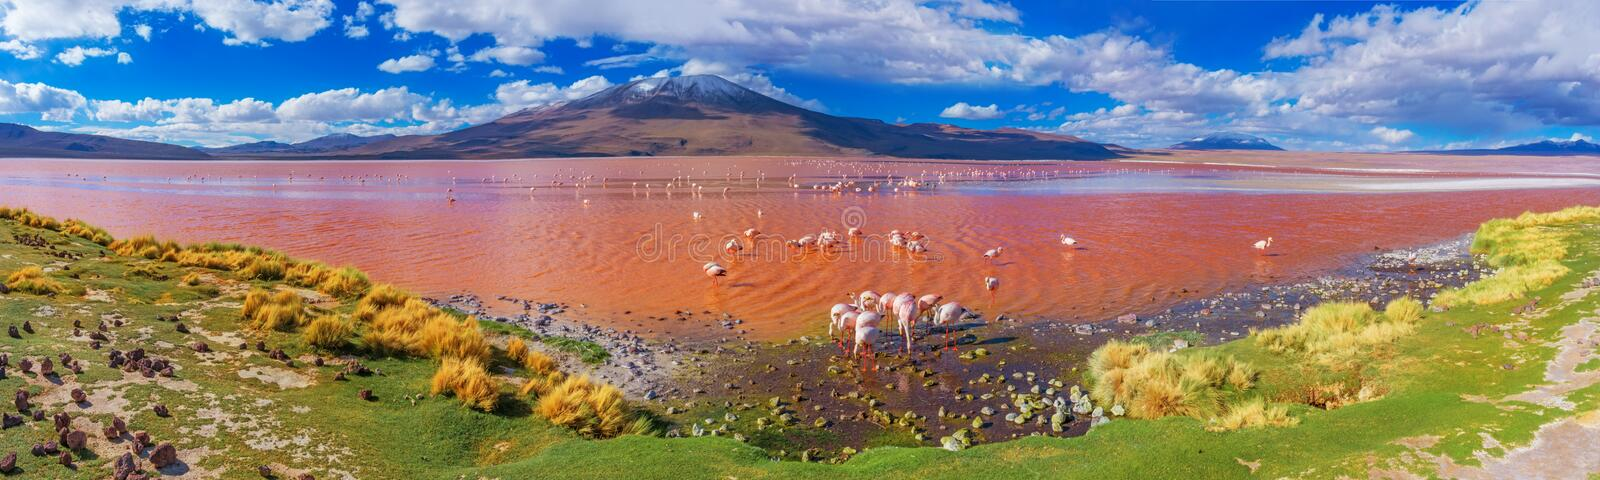 Flamingoes in Laguna Colorada, Bolivië royalty-vrije stock foto's